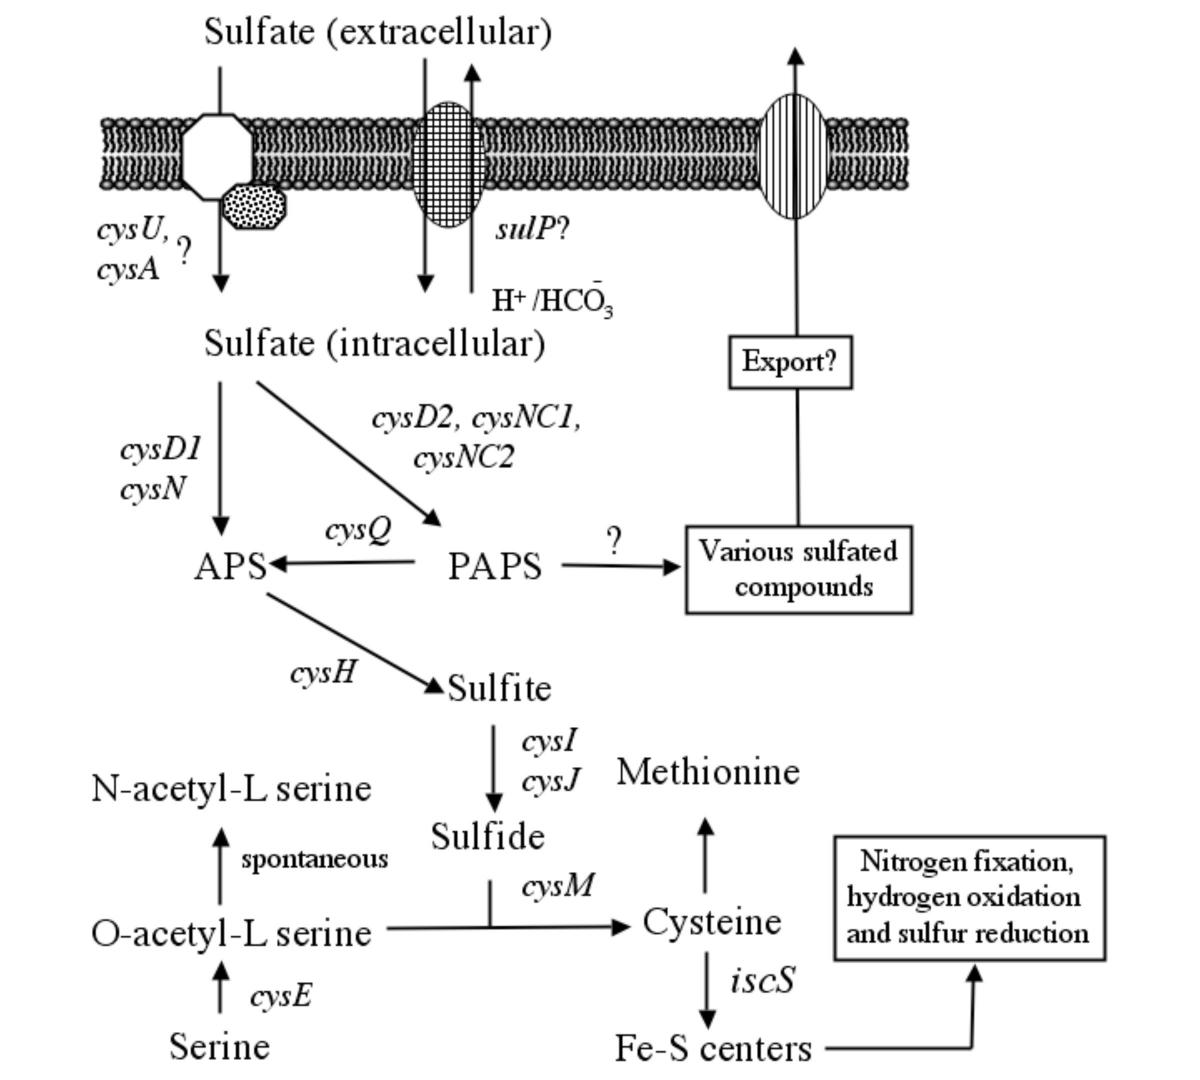 http://static-content.springer.com/image/art%3A10.1186%2F1471-2164-4-51/MediaObjects/12864_2003_Article_100_Fig1_HTML.jpg